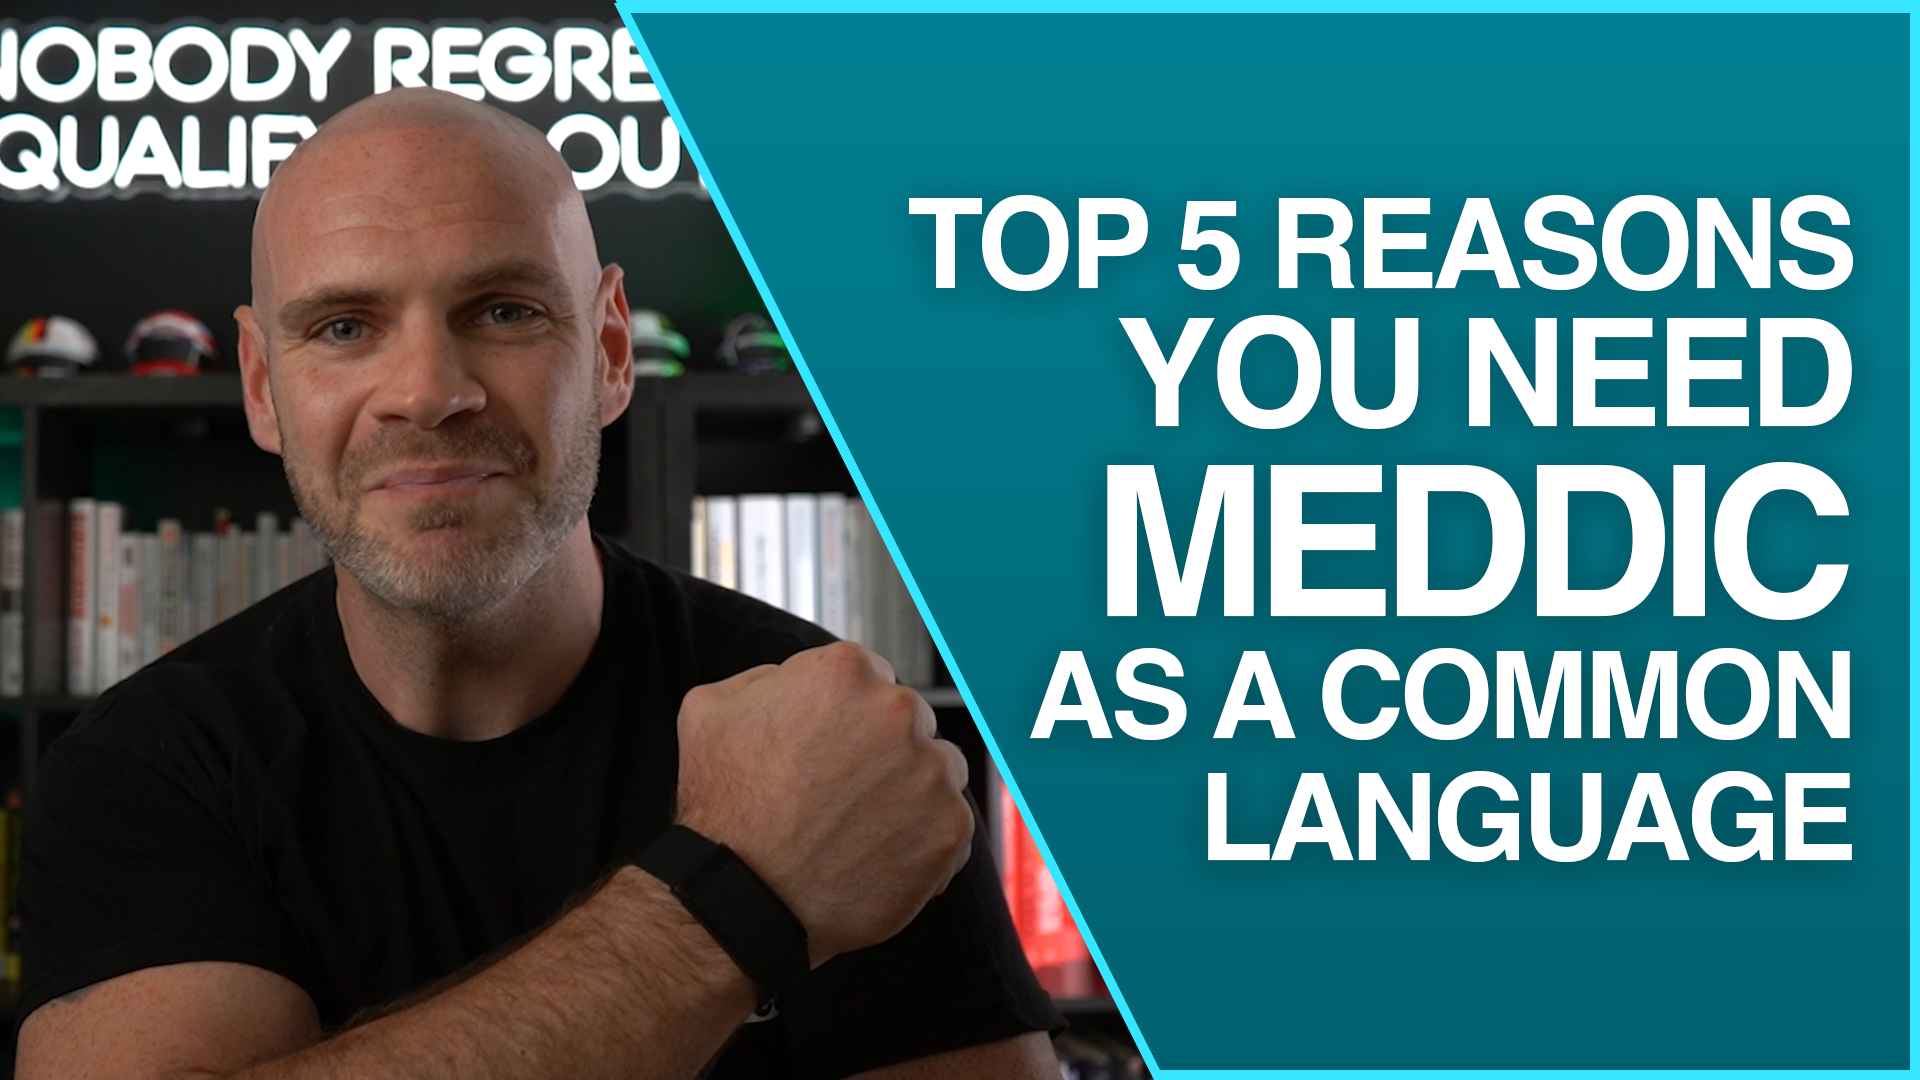 5 Reasons Why You Need MEDDIC as a Common Language